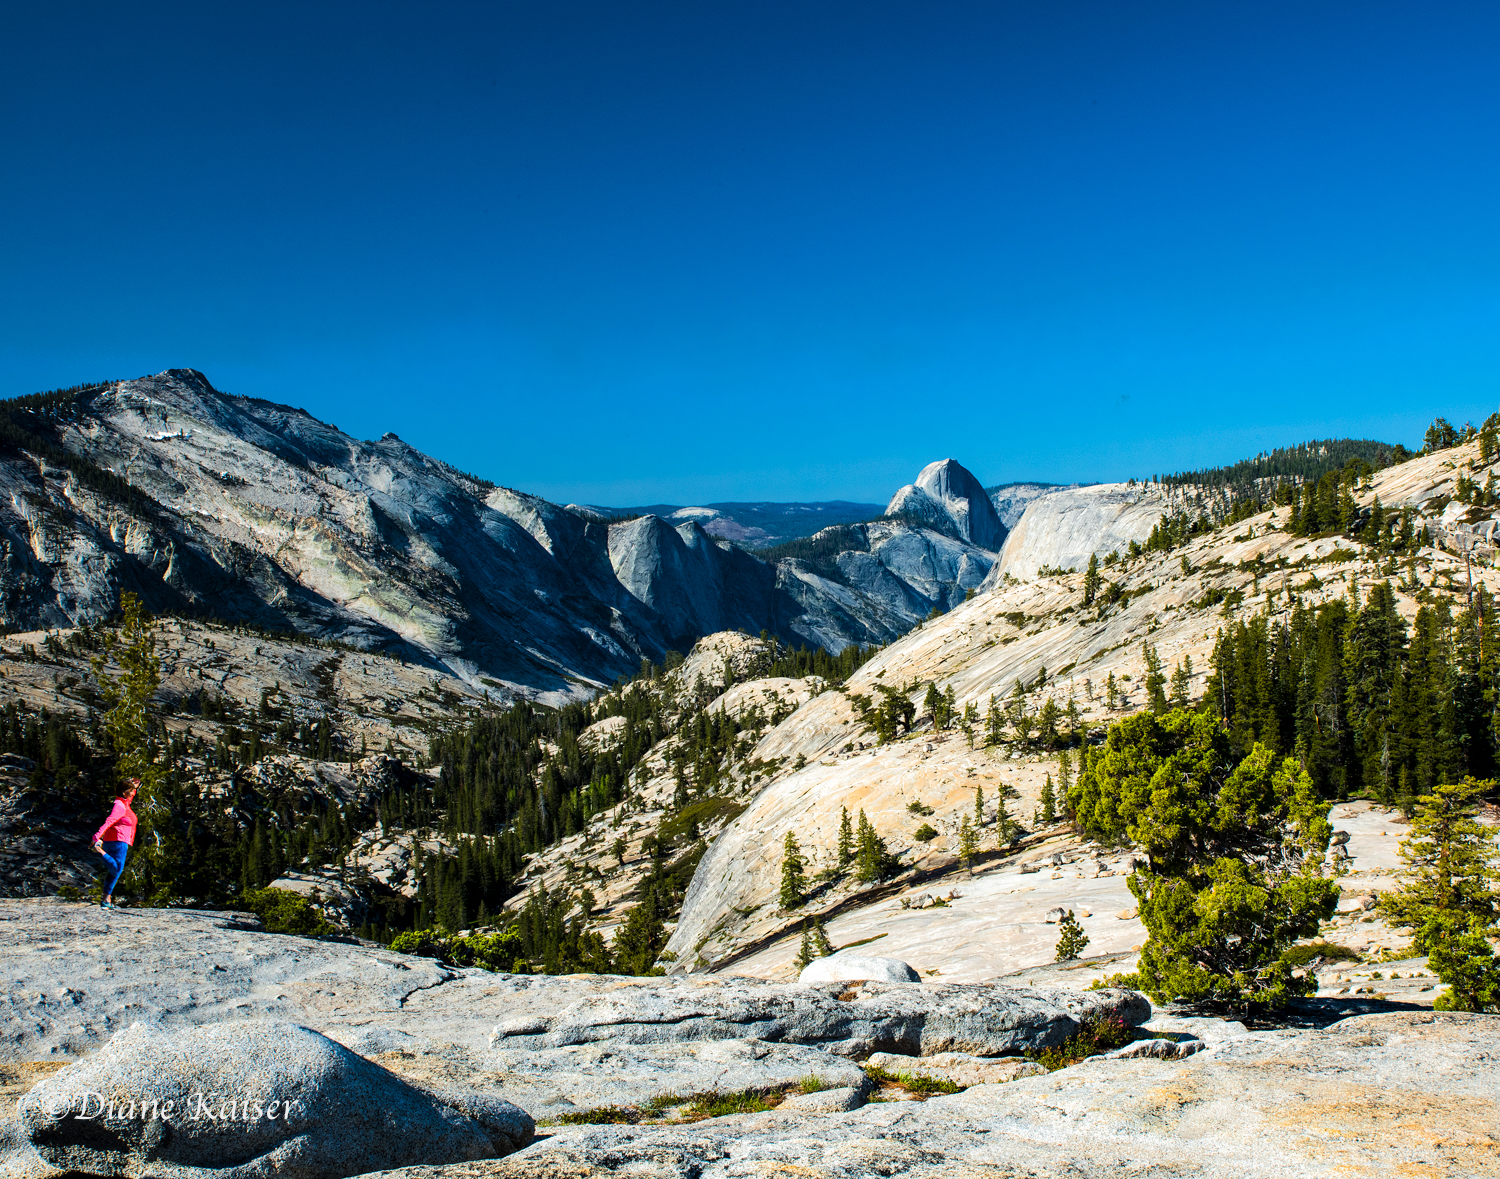 Taken at Olsted Point.The iconic granite Half Dome is visible in many areas of the park, but we pulled over here to get a different view. To the left of Half Dome is the northwest face of Cloud's Rest at 9,926 feet above sea level. Its face drops nearly 5000 feet to lower Tenaya Creek.